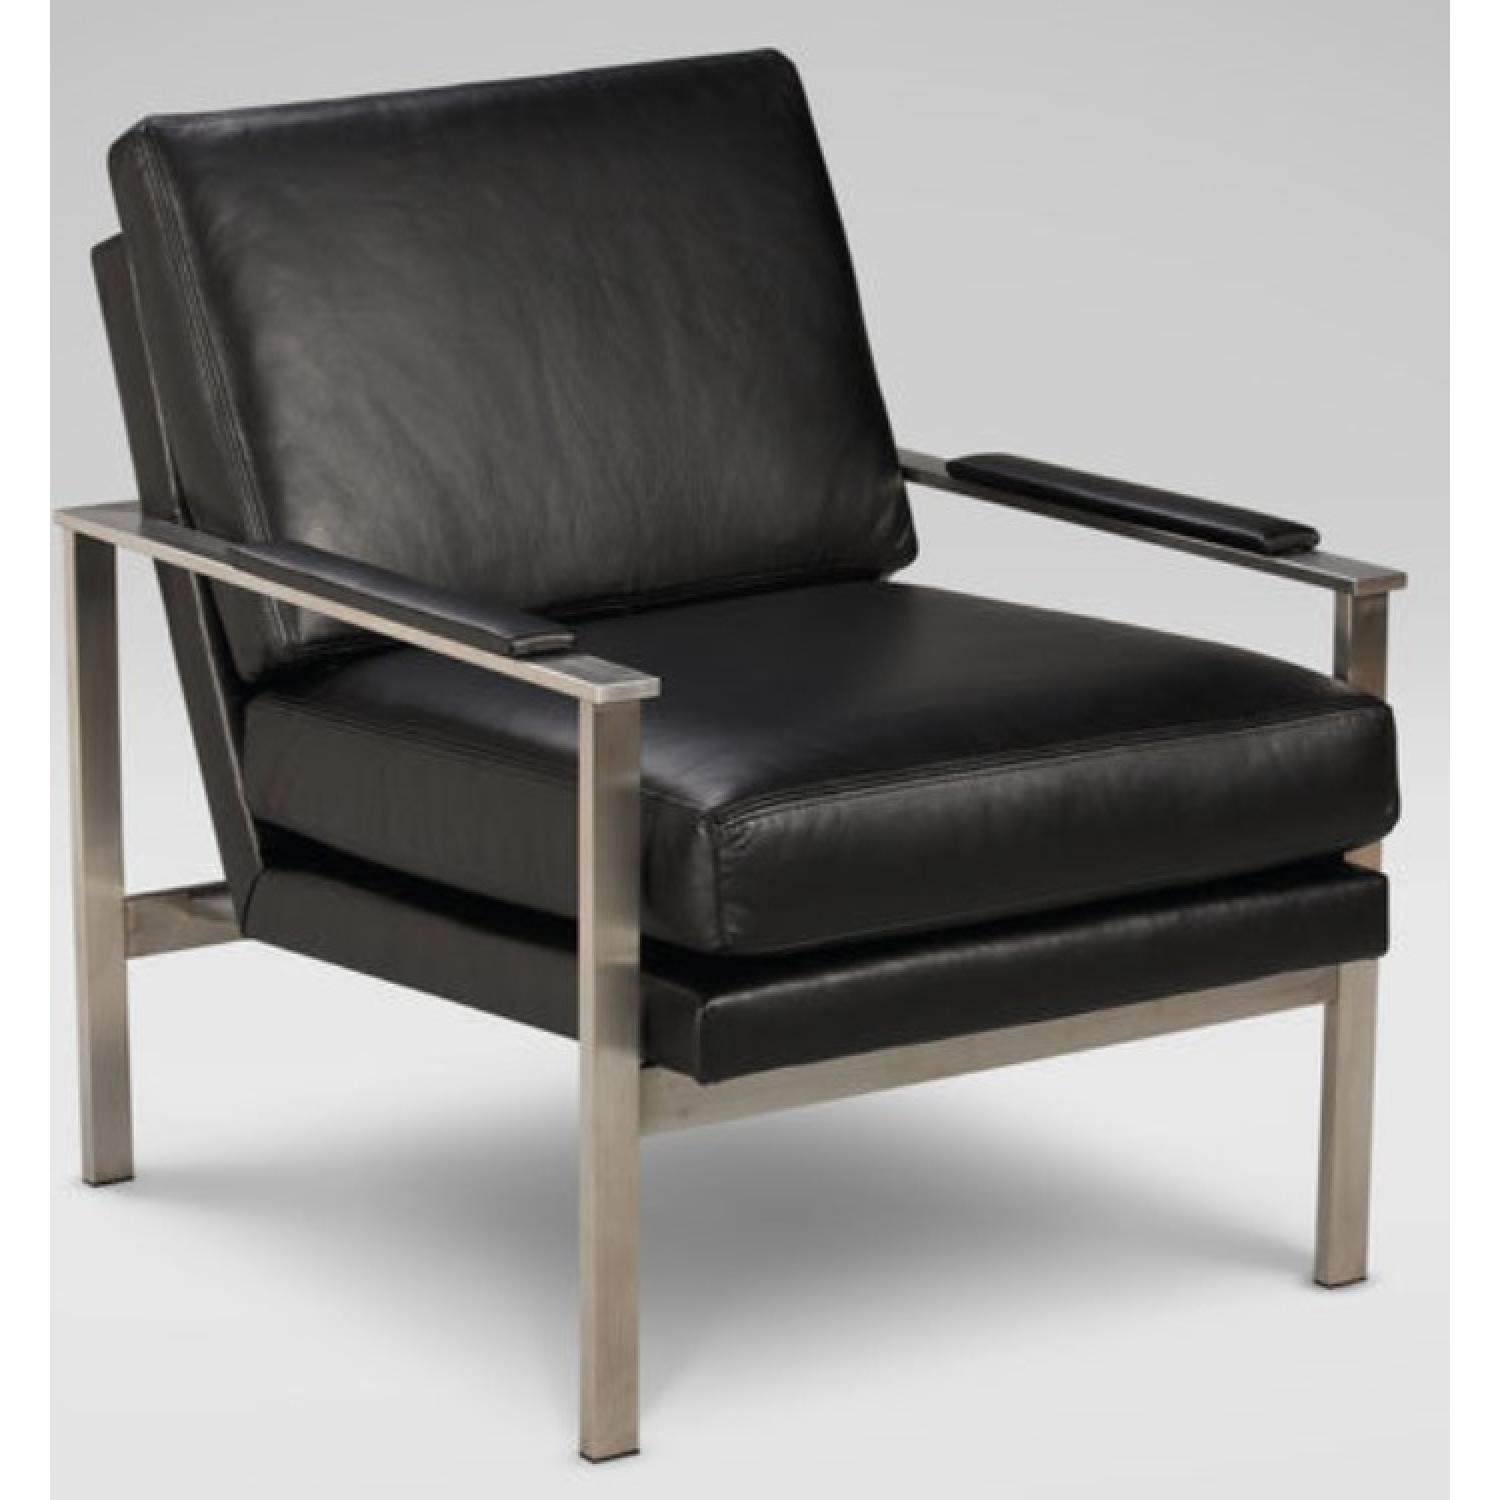 Ethan Allen Jericho Leather Chair - image-3